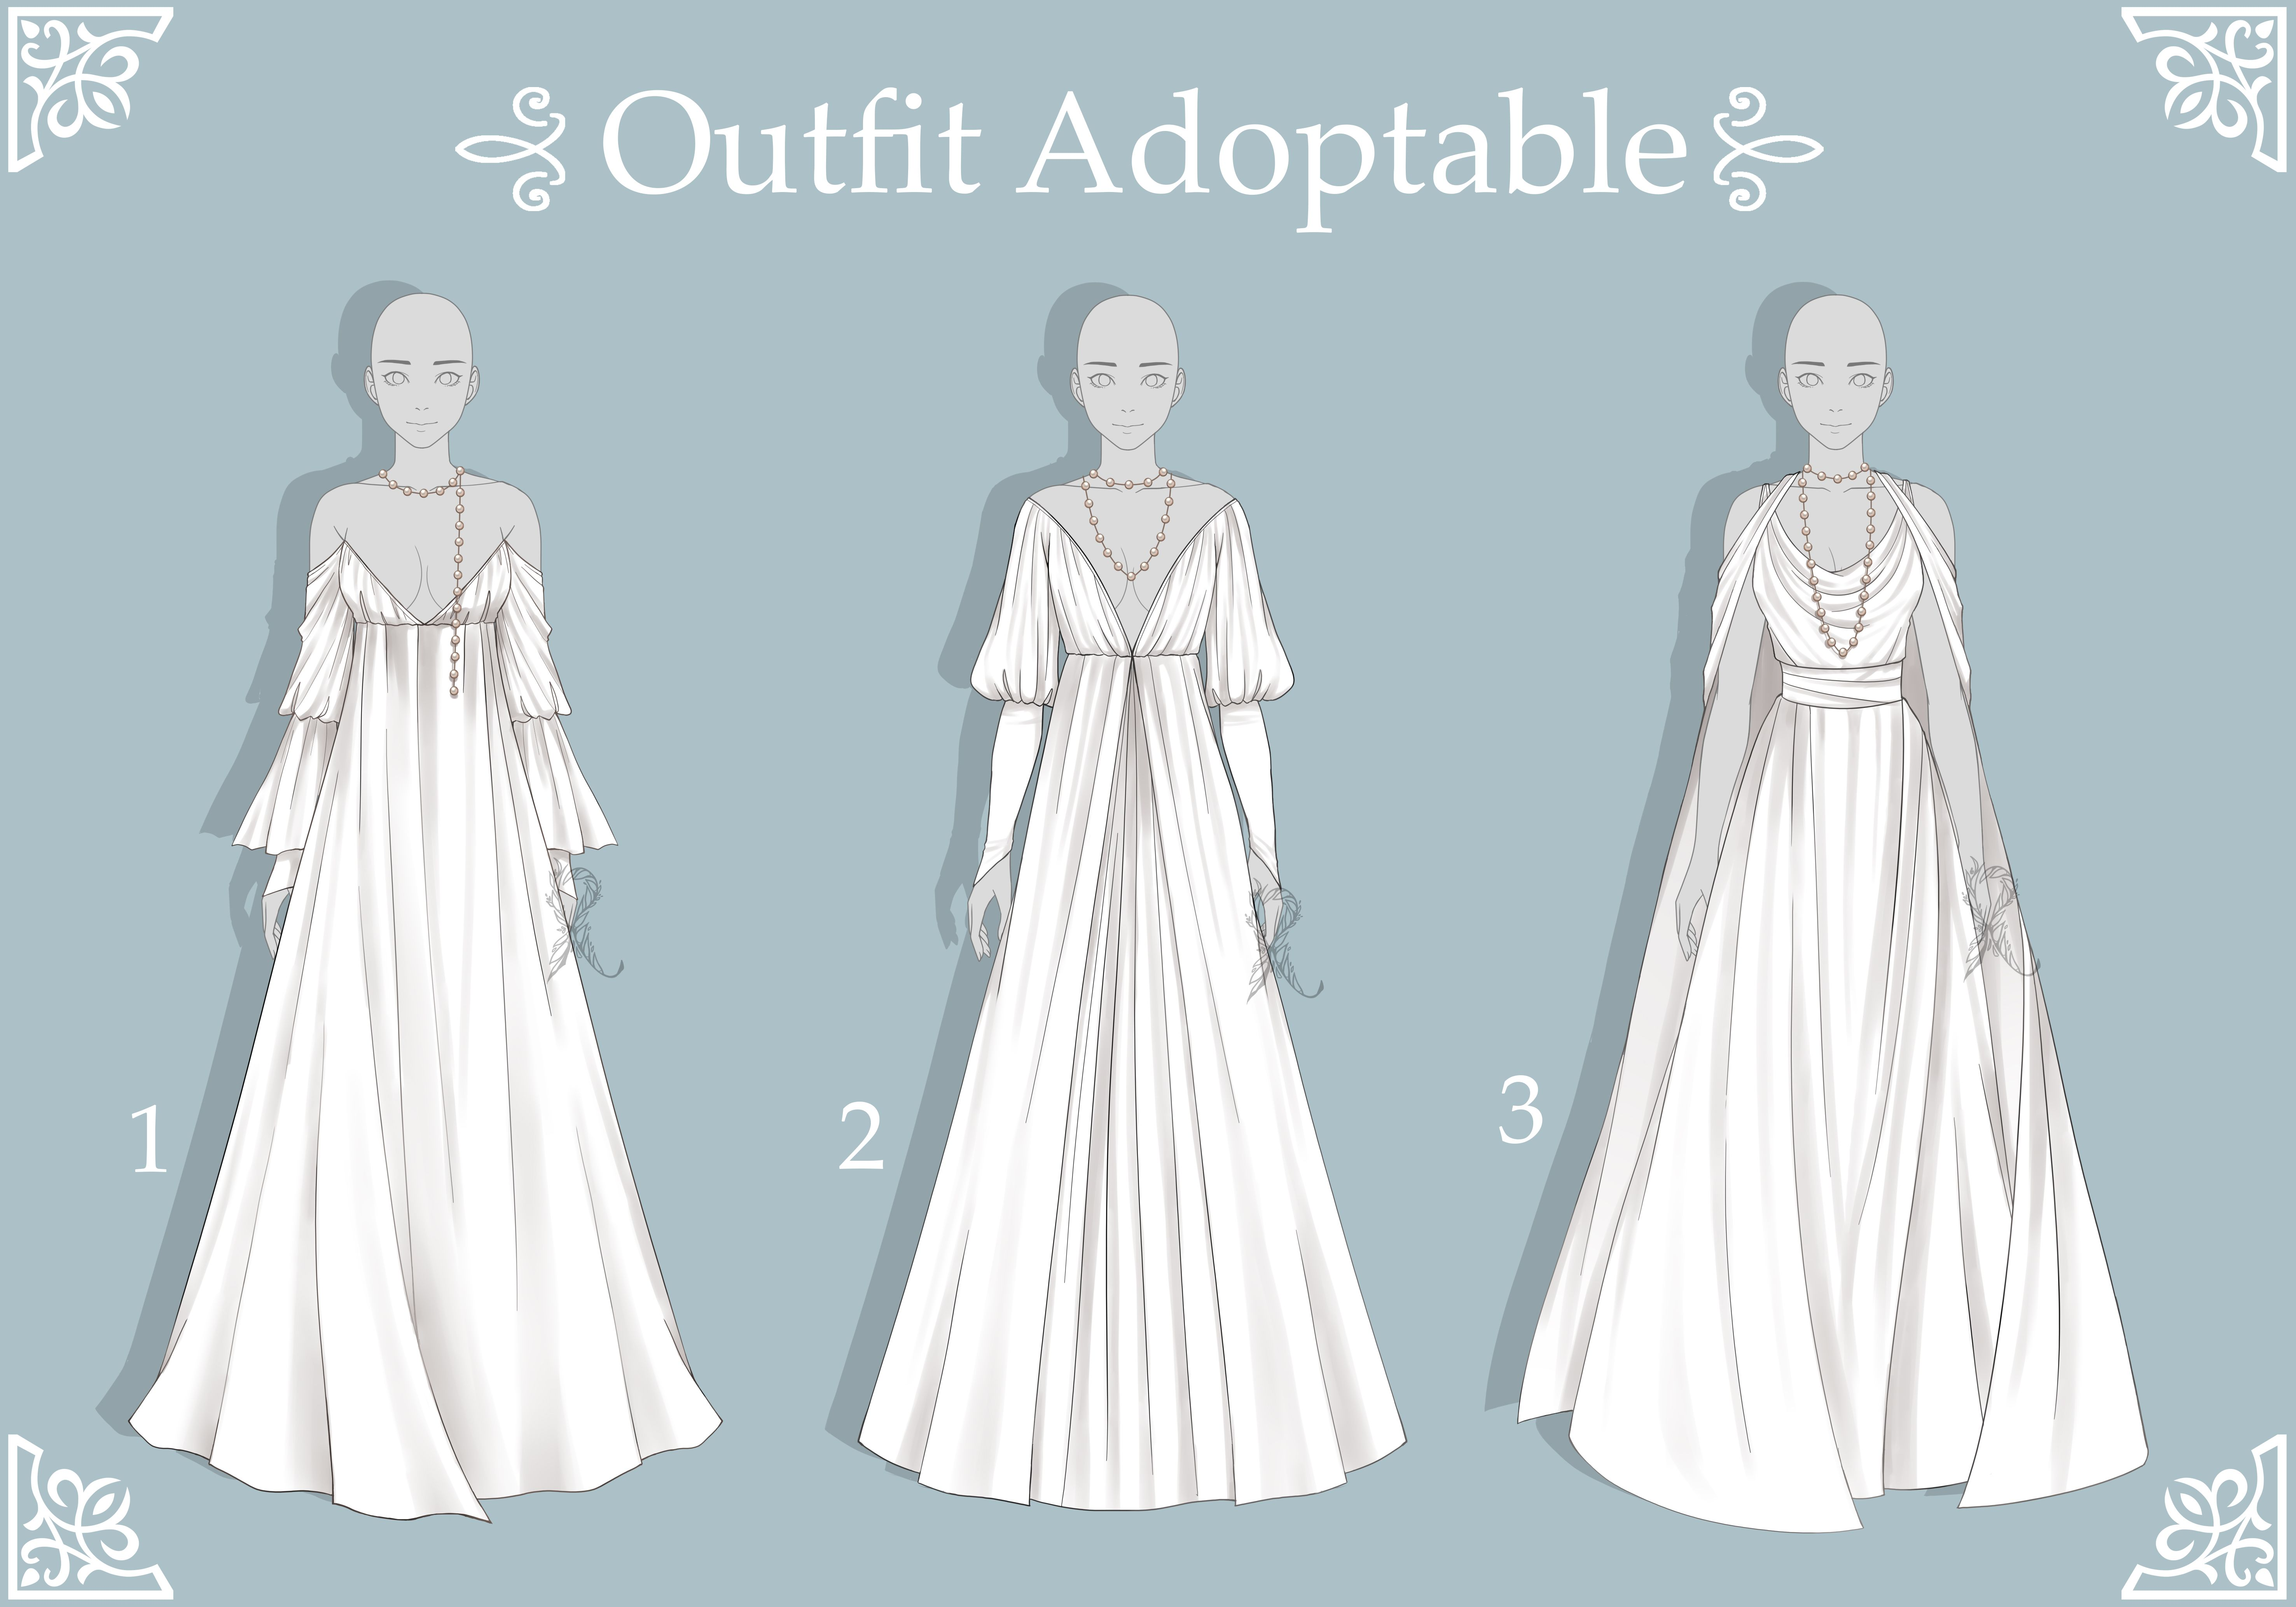 Open 2 3 Adoptable Fantasy Outfit 50 By Rosariy On